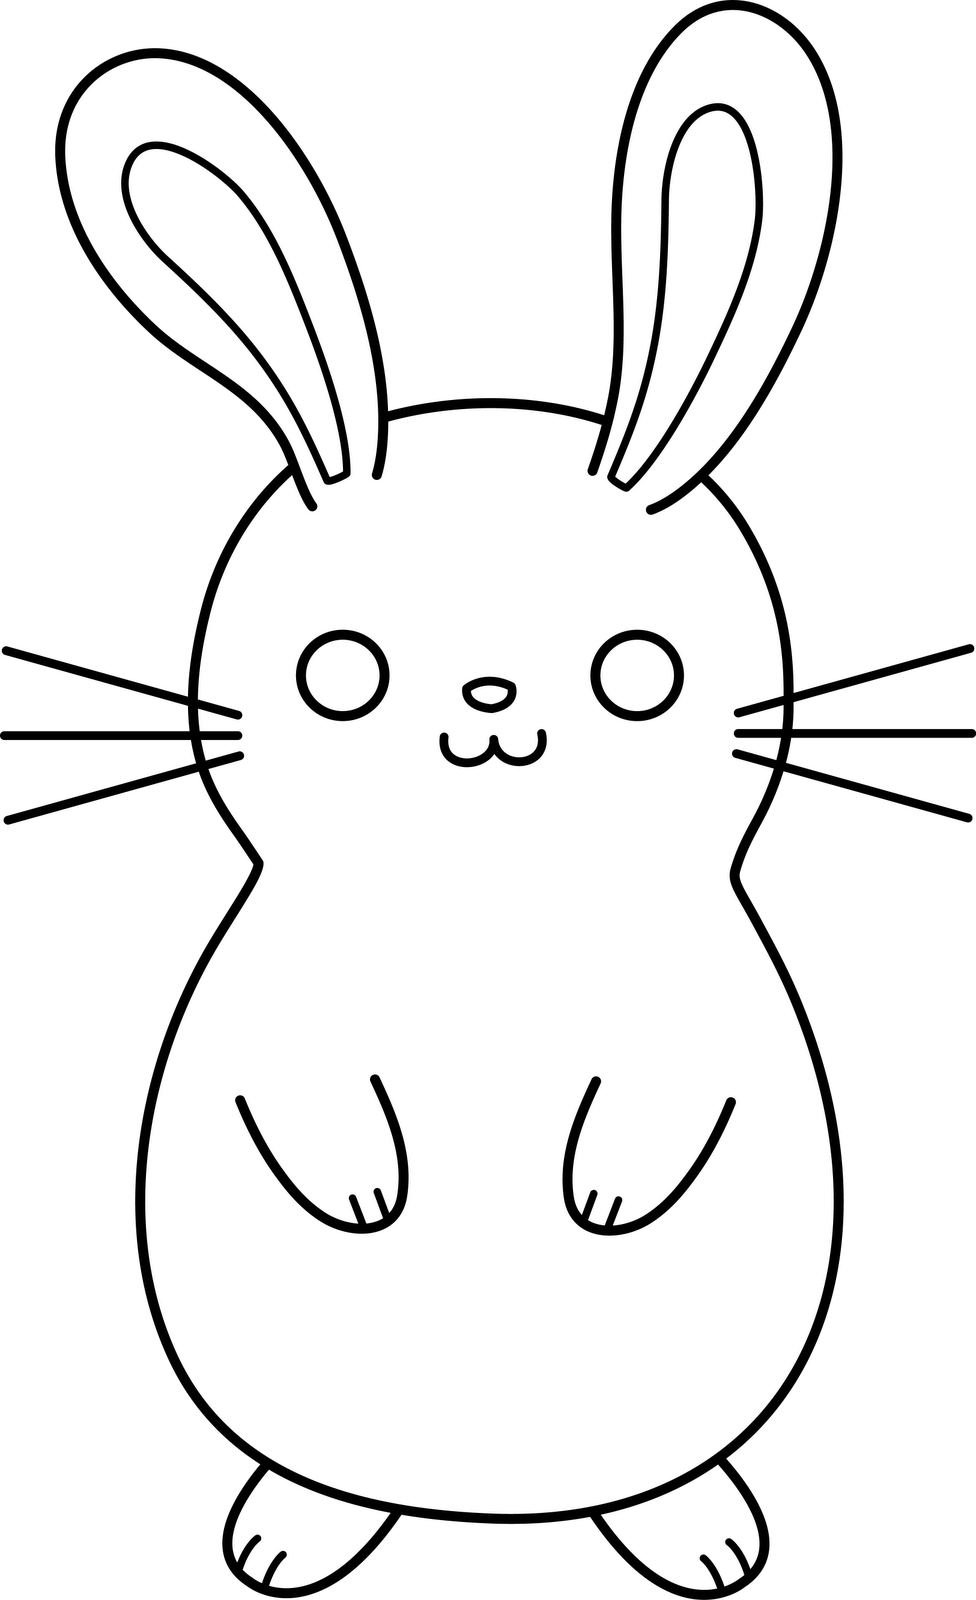 black and white rabbit drawing onlinelabels clip art the white rabbit black rabbit and white black drawing